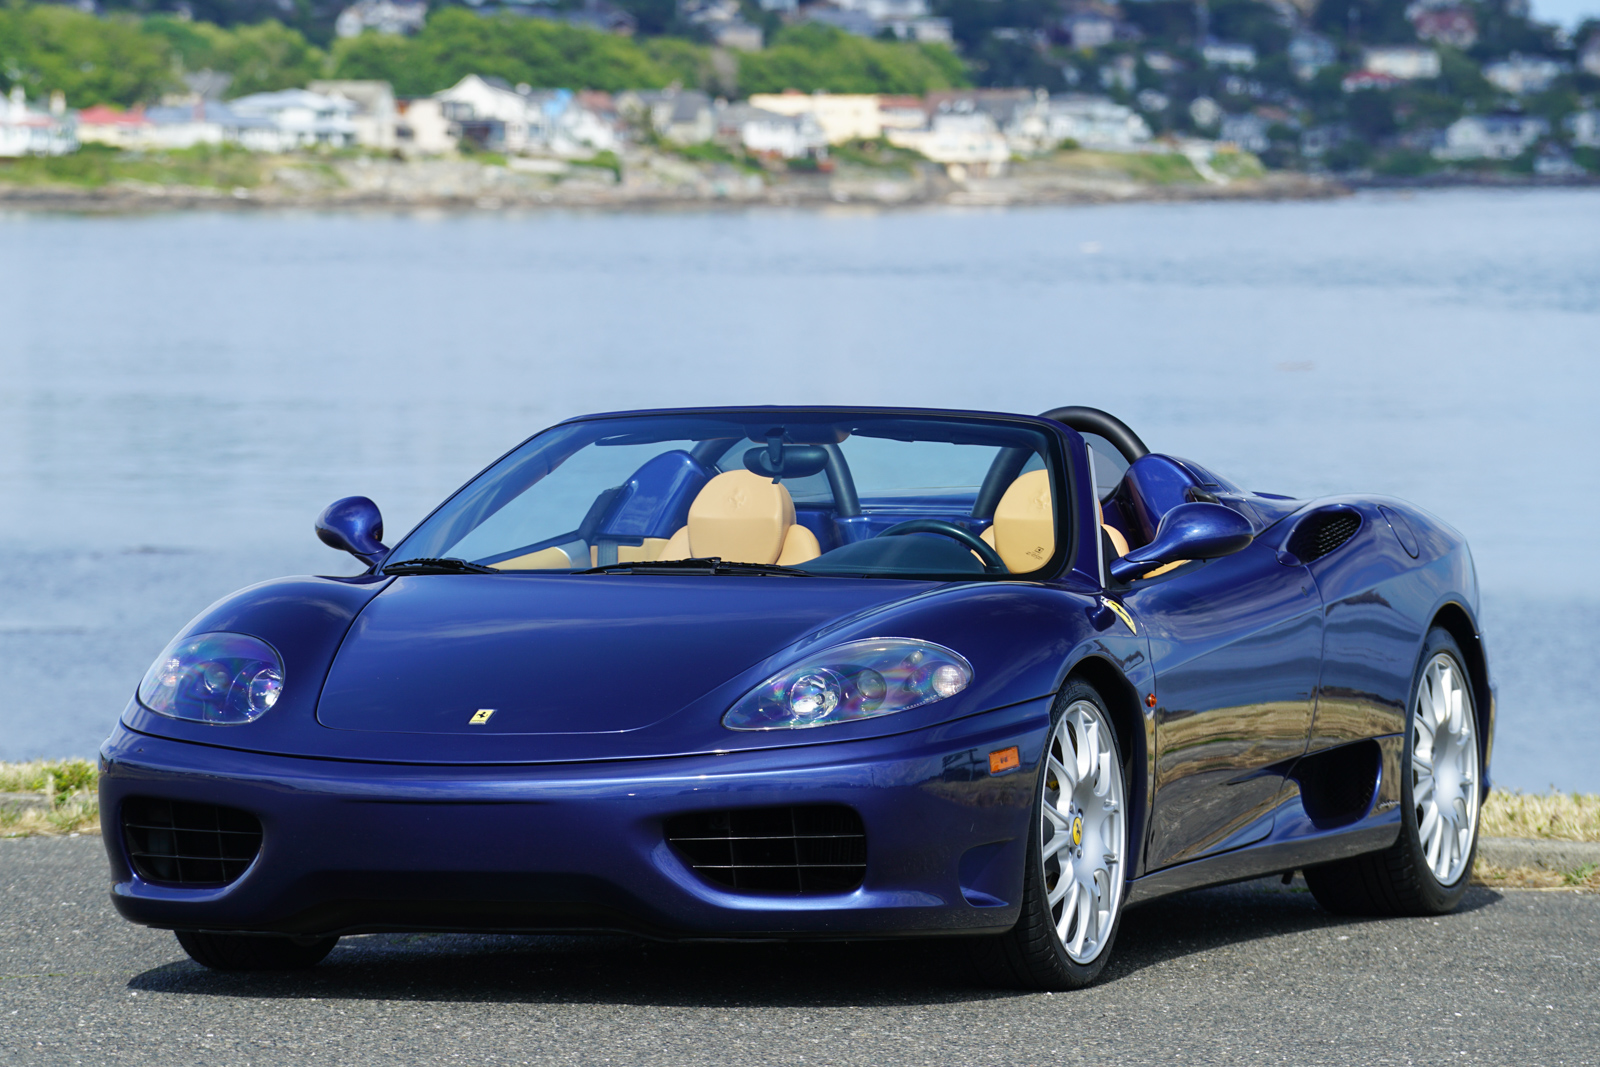 2003 ferrari 360 spider f1 for sale silver arrow cars ltd. Black Bedroom Furniture Sets. Home Design Ideas